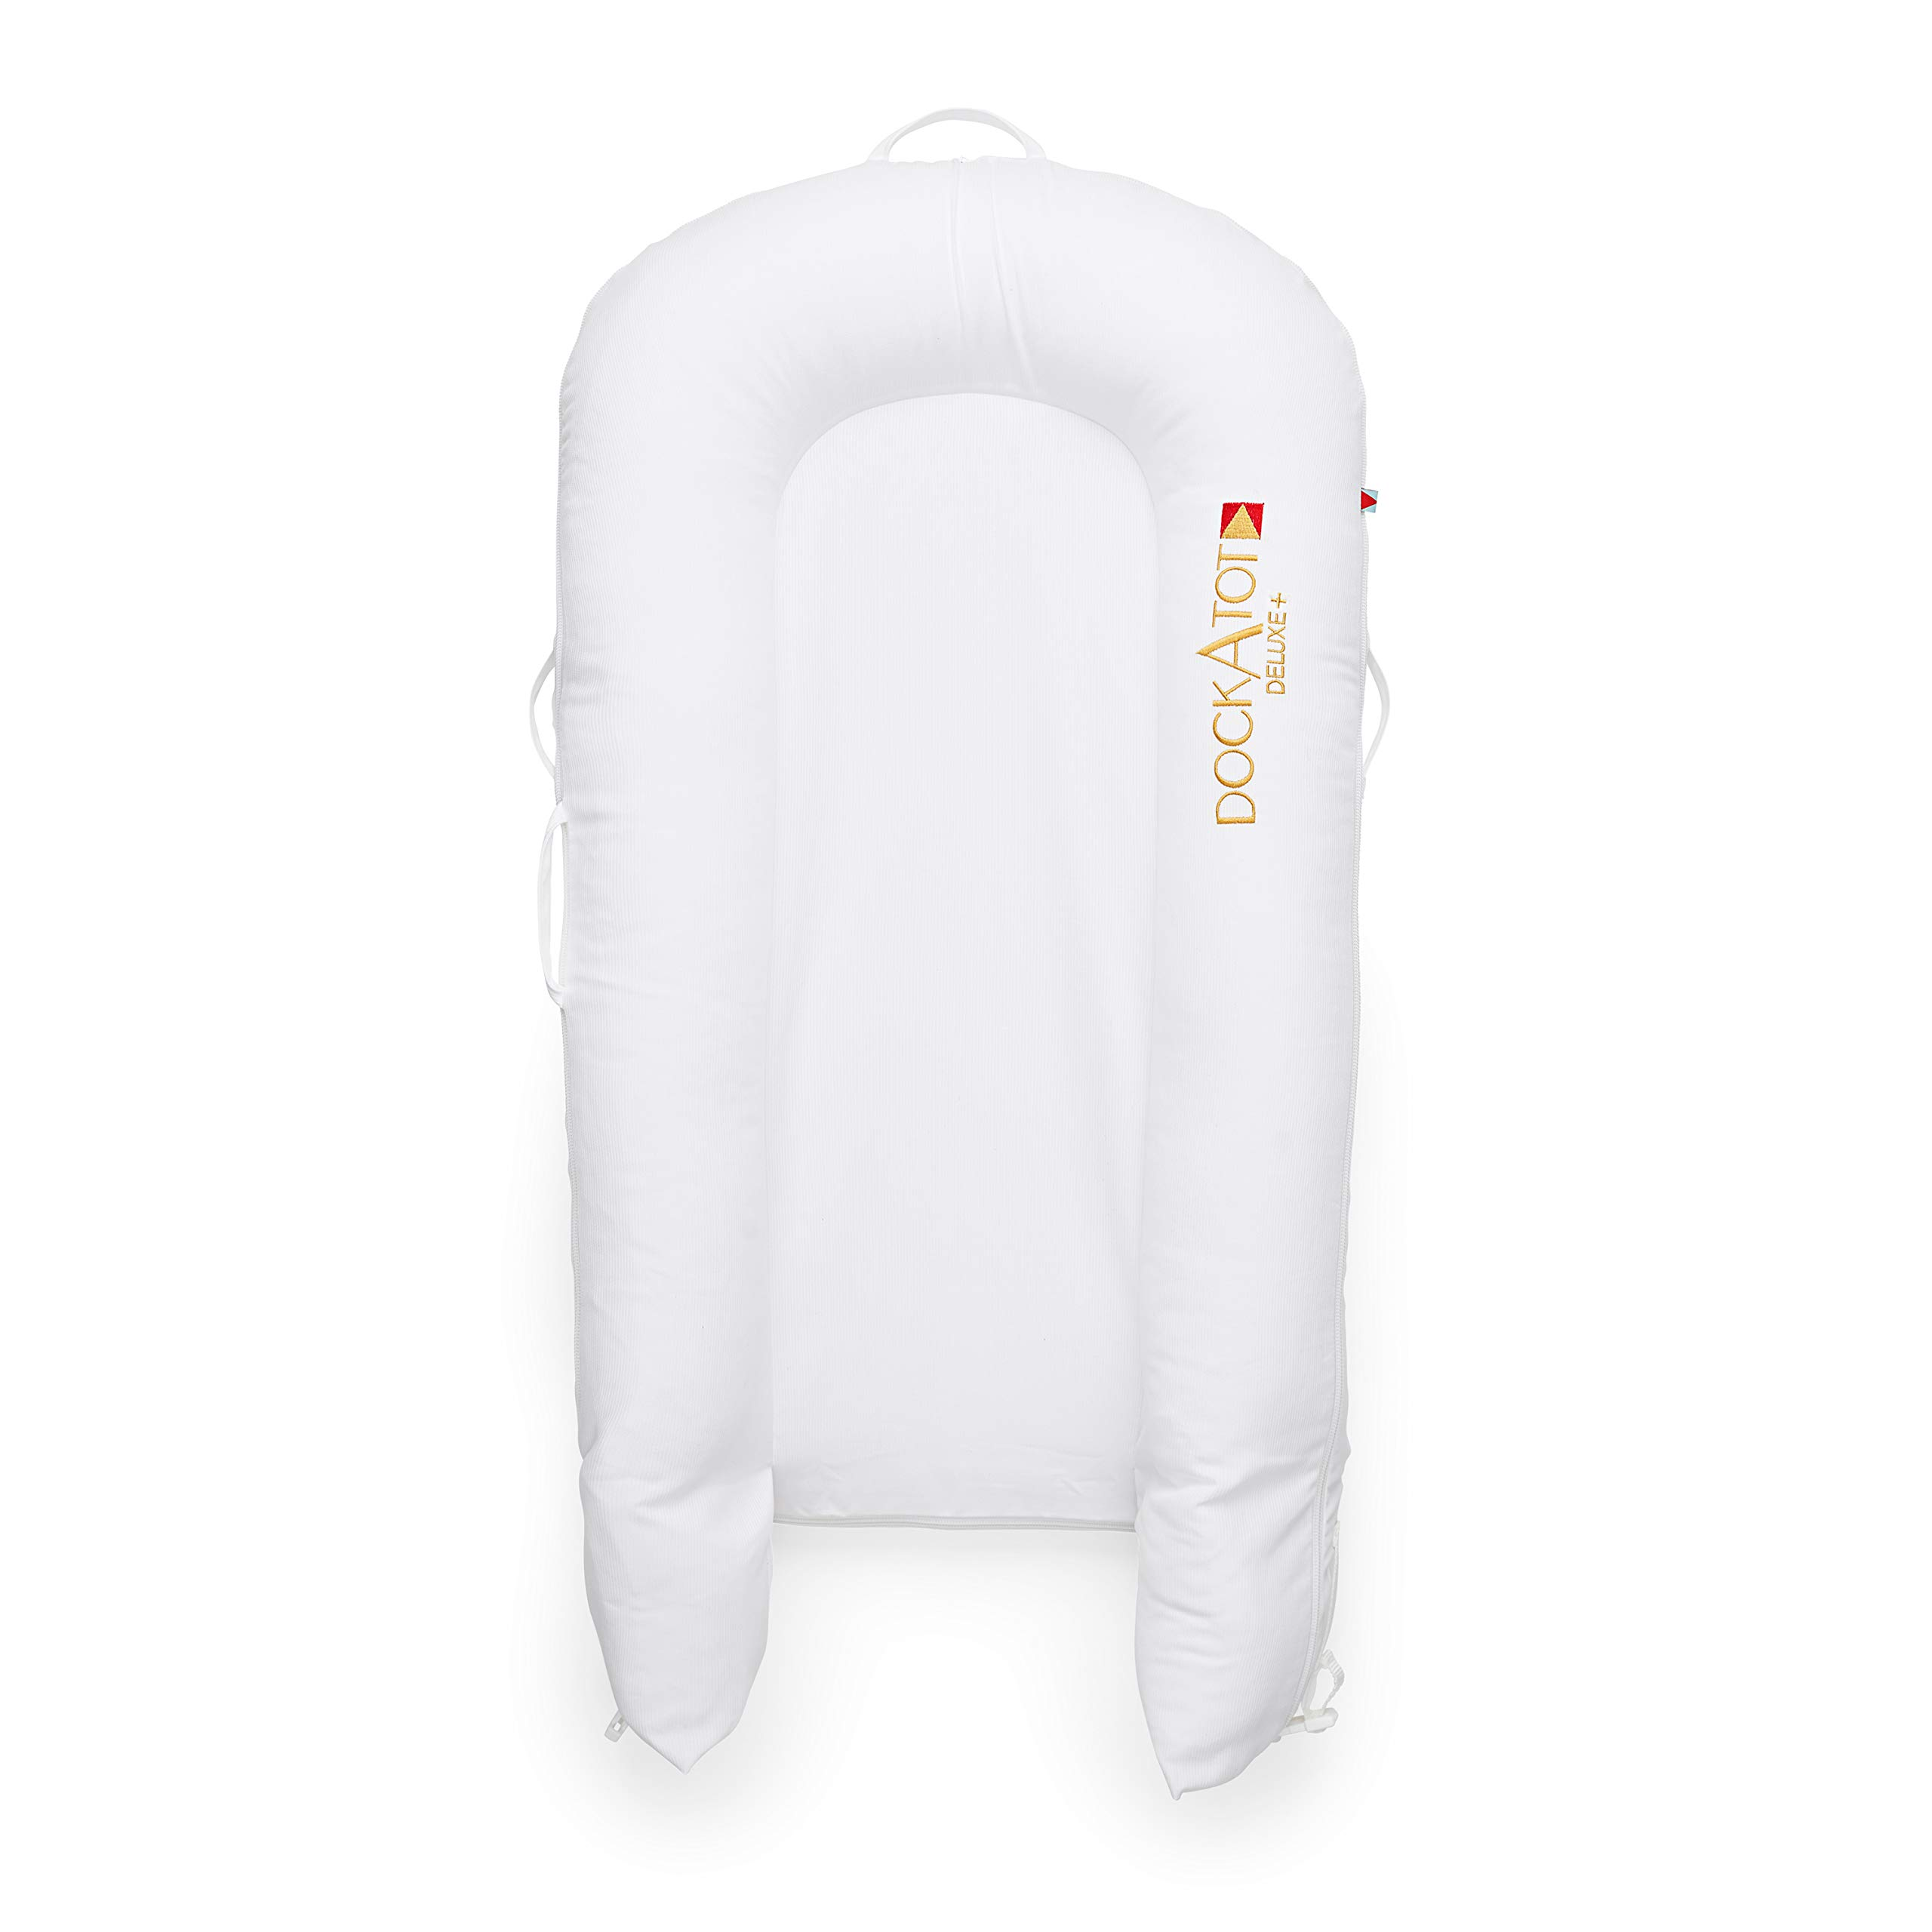 DockATot Deluxe+ Dock (Pristine White) - The All in One Baby Lounger - Perfect for Co Sleeping - Suitable from 0-8 Months (Pristine White) by DockATot (Image #2)